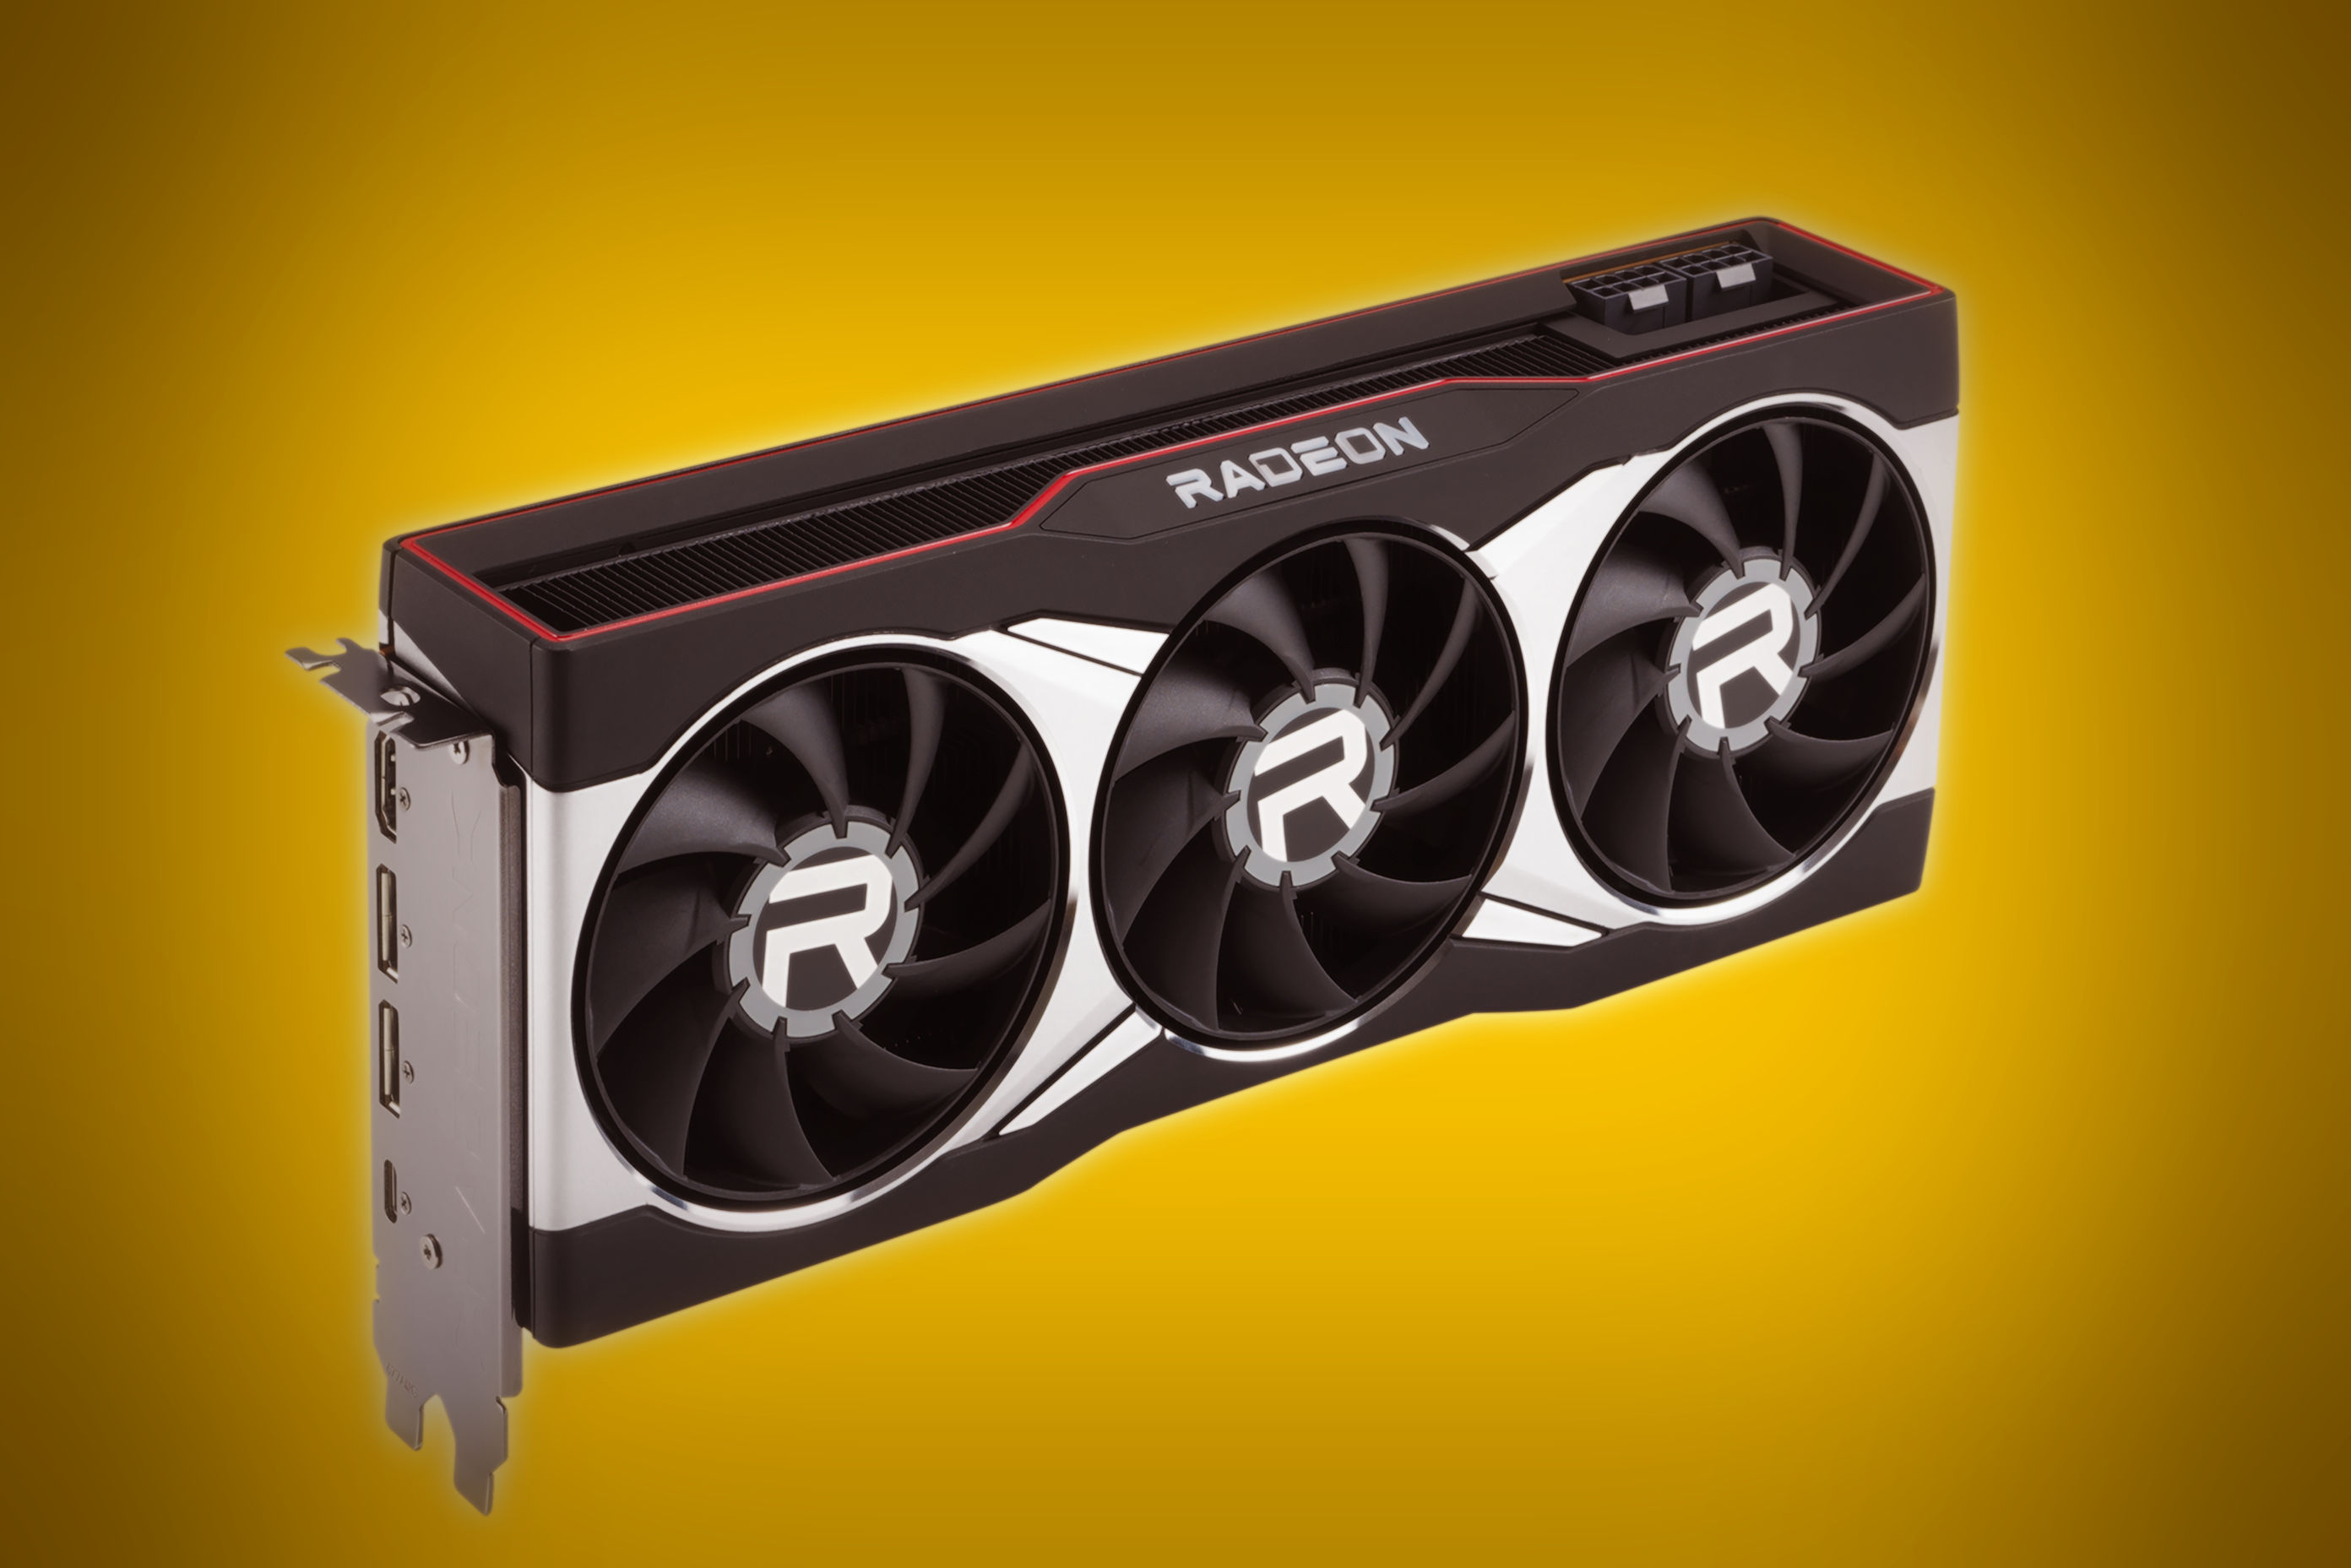 The biggest Swiss retailer to receive 35 Radeon RX 6900 XT graphics cards for launch – VideoCardz.com